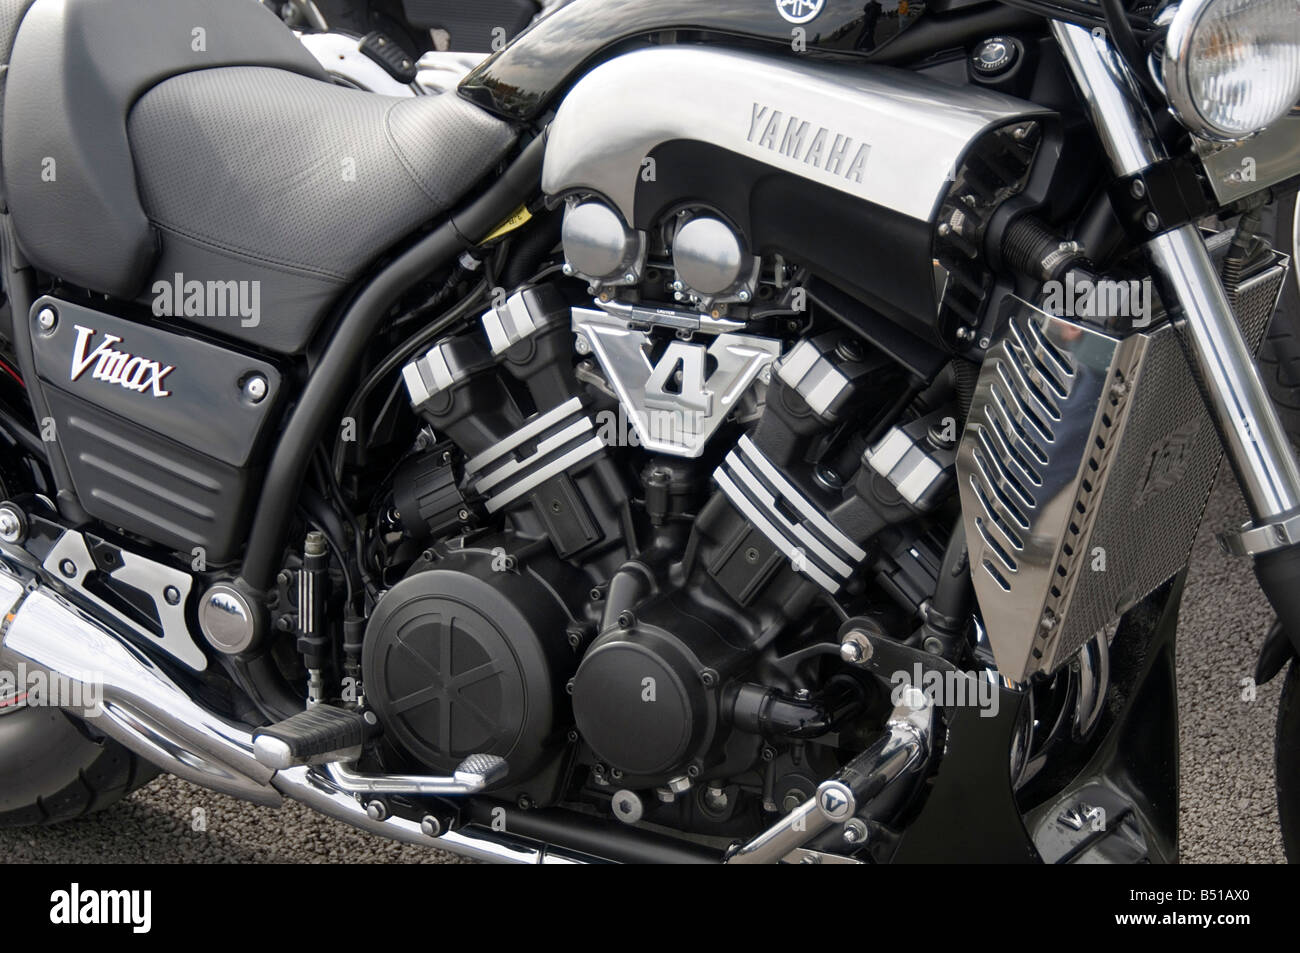 yamaha v max vmax motorcycle motorbike motor bike cycle engine high powered muscle bike - Stock Image